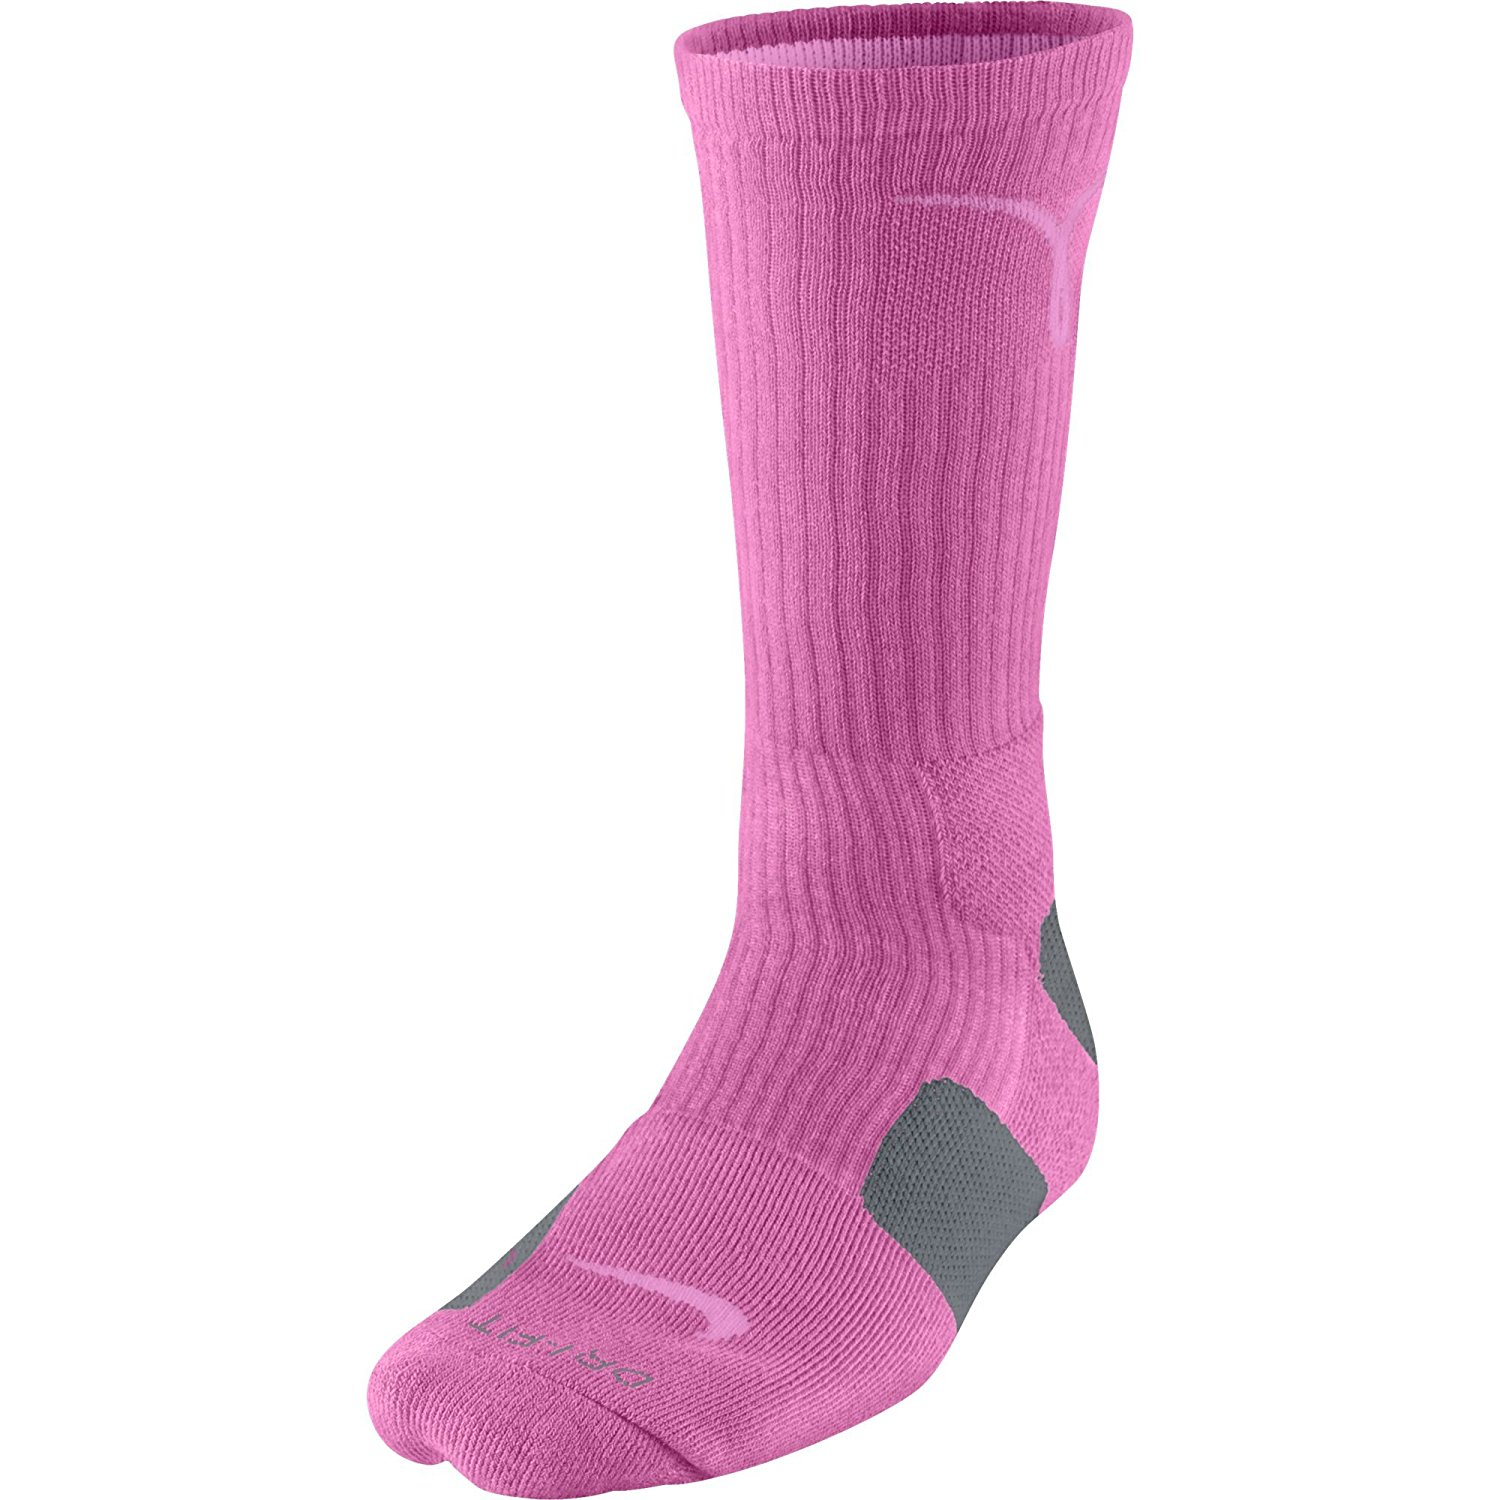 reputable site eb808 1d3fb Get Quotations · Nike Kay Yow Elite Crew Basketball Socks Pink Grey Size  Socks Large 8-12